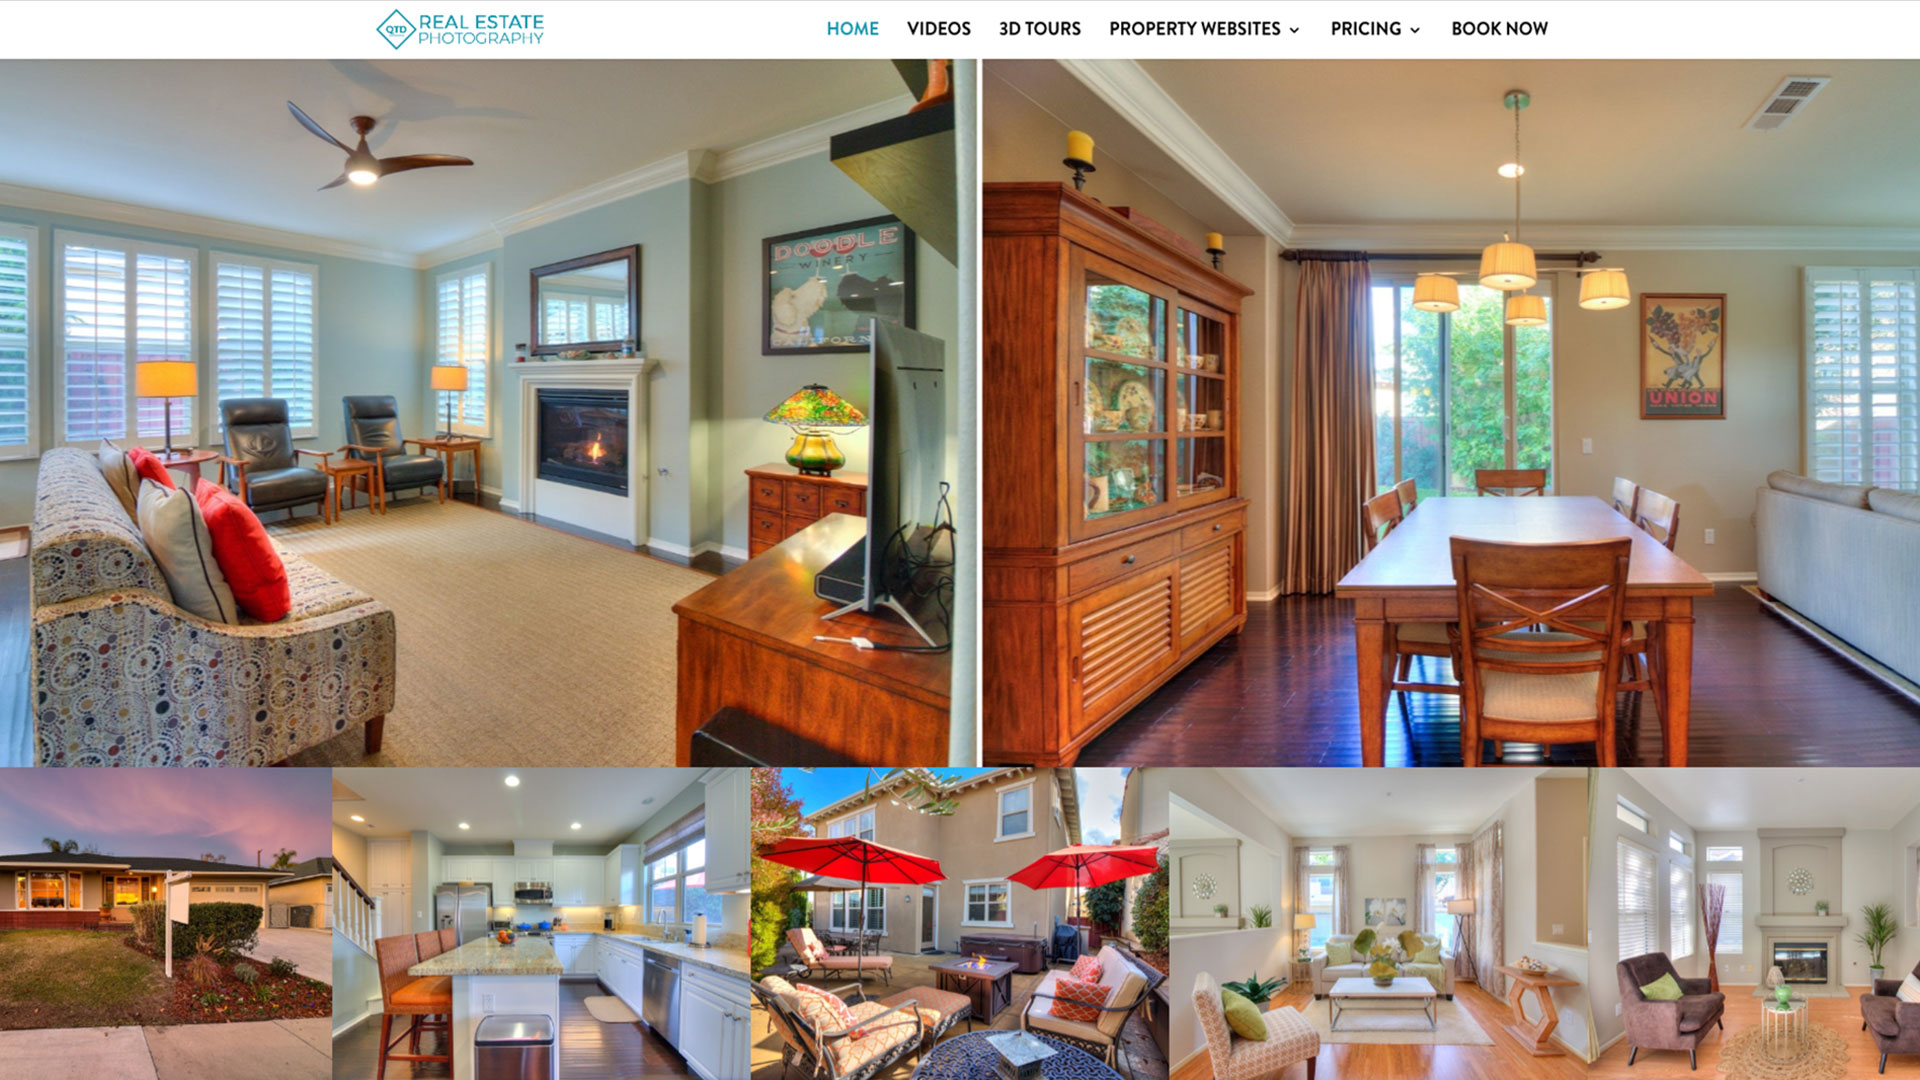 Real Estate Photography & 3D Tours in Long Beach, CA area